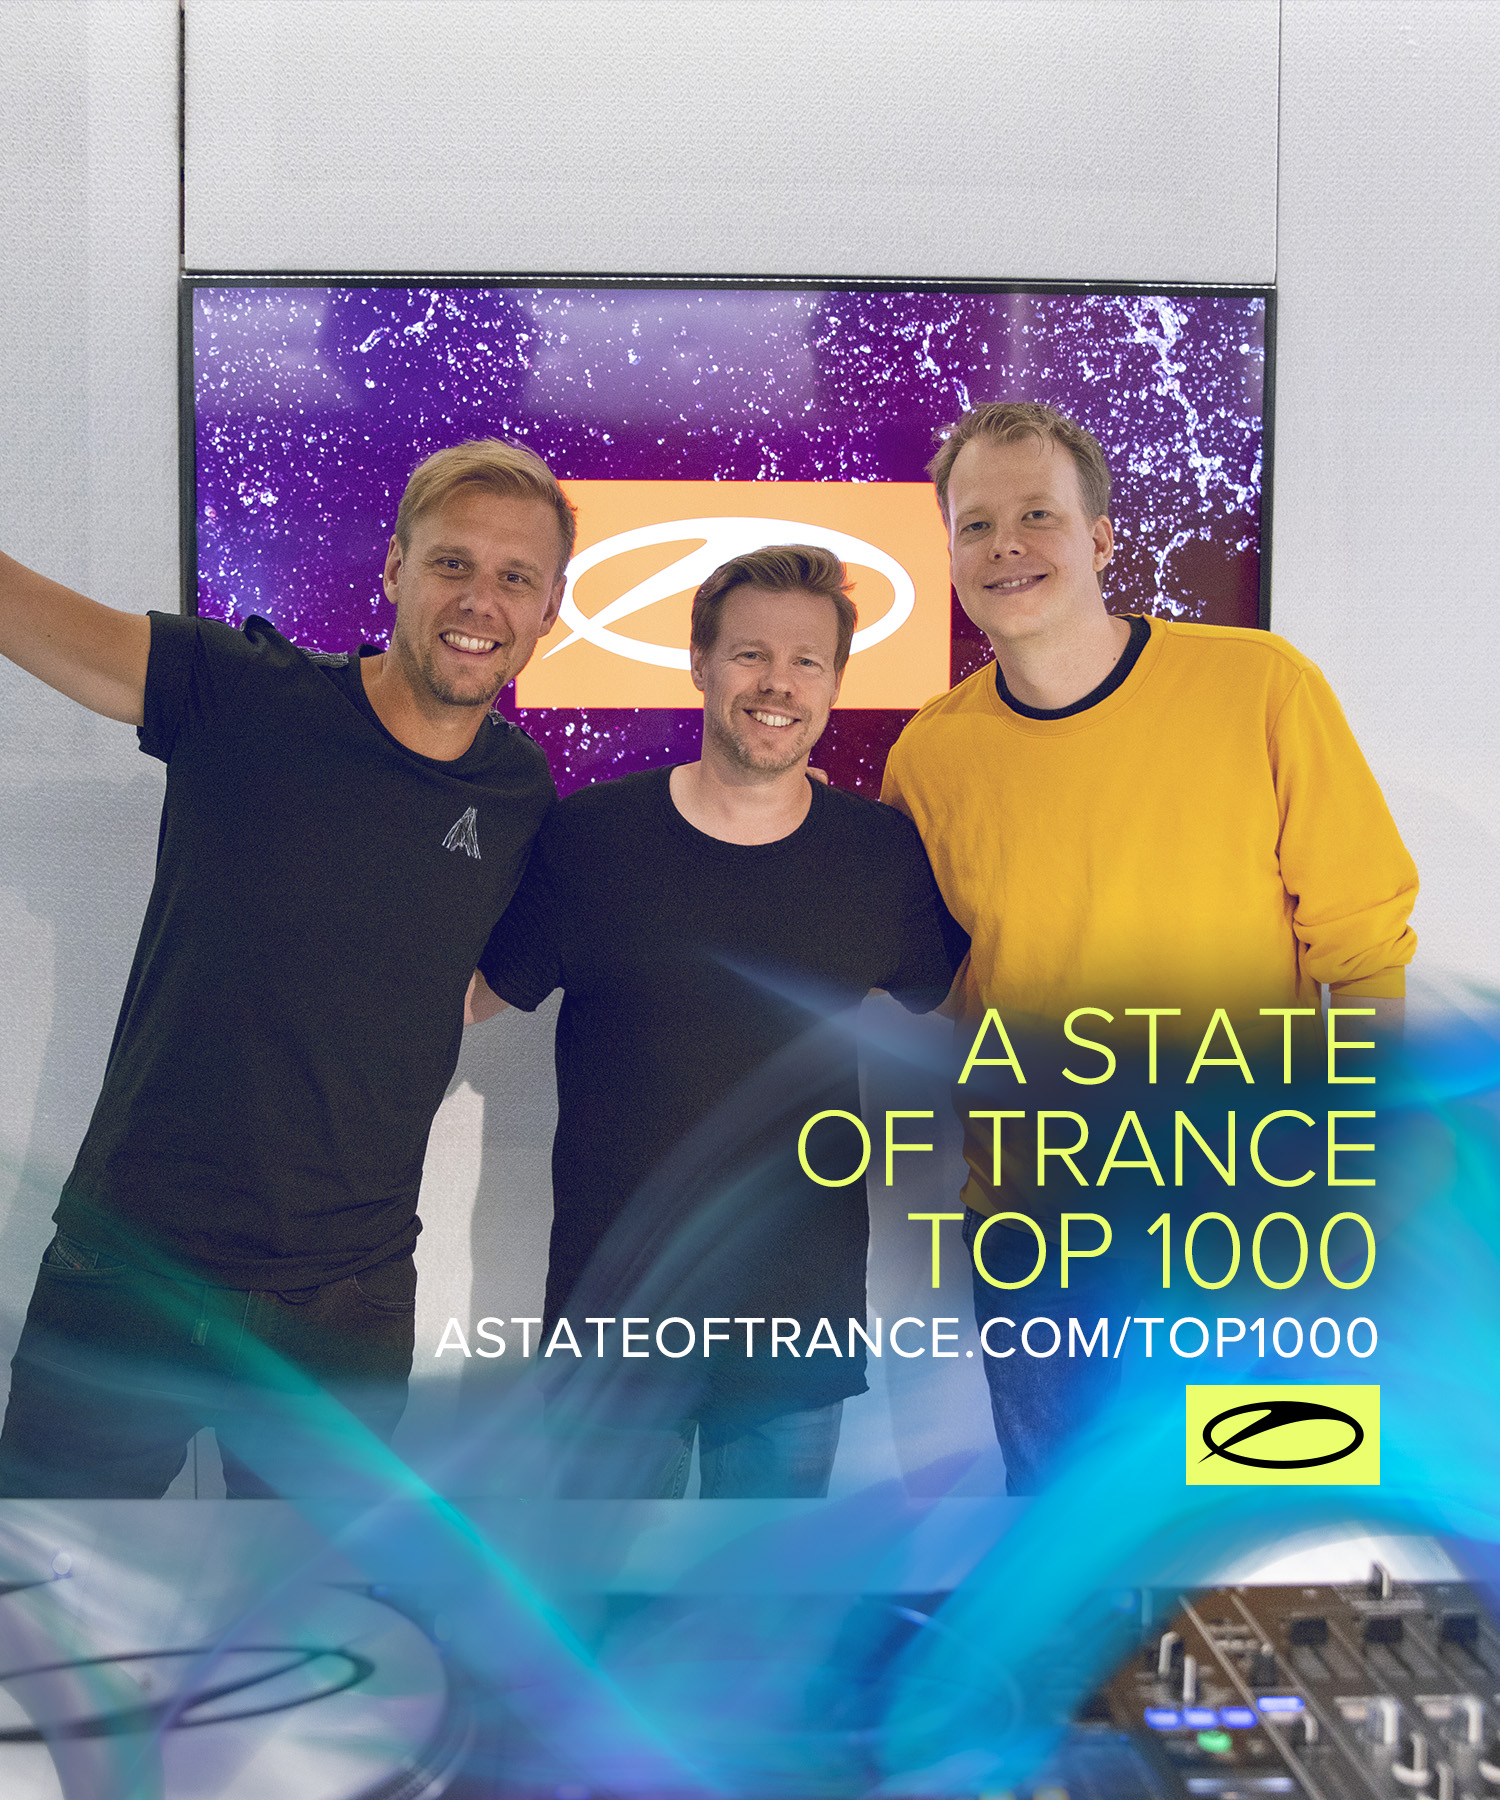 A State Of Trance Top 1000.